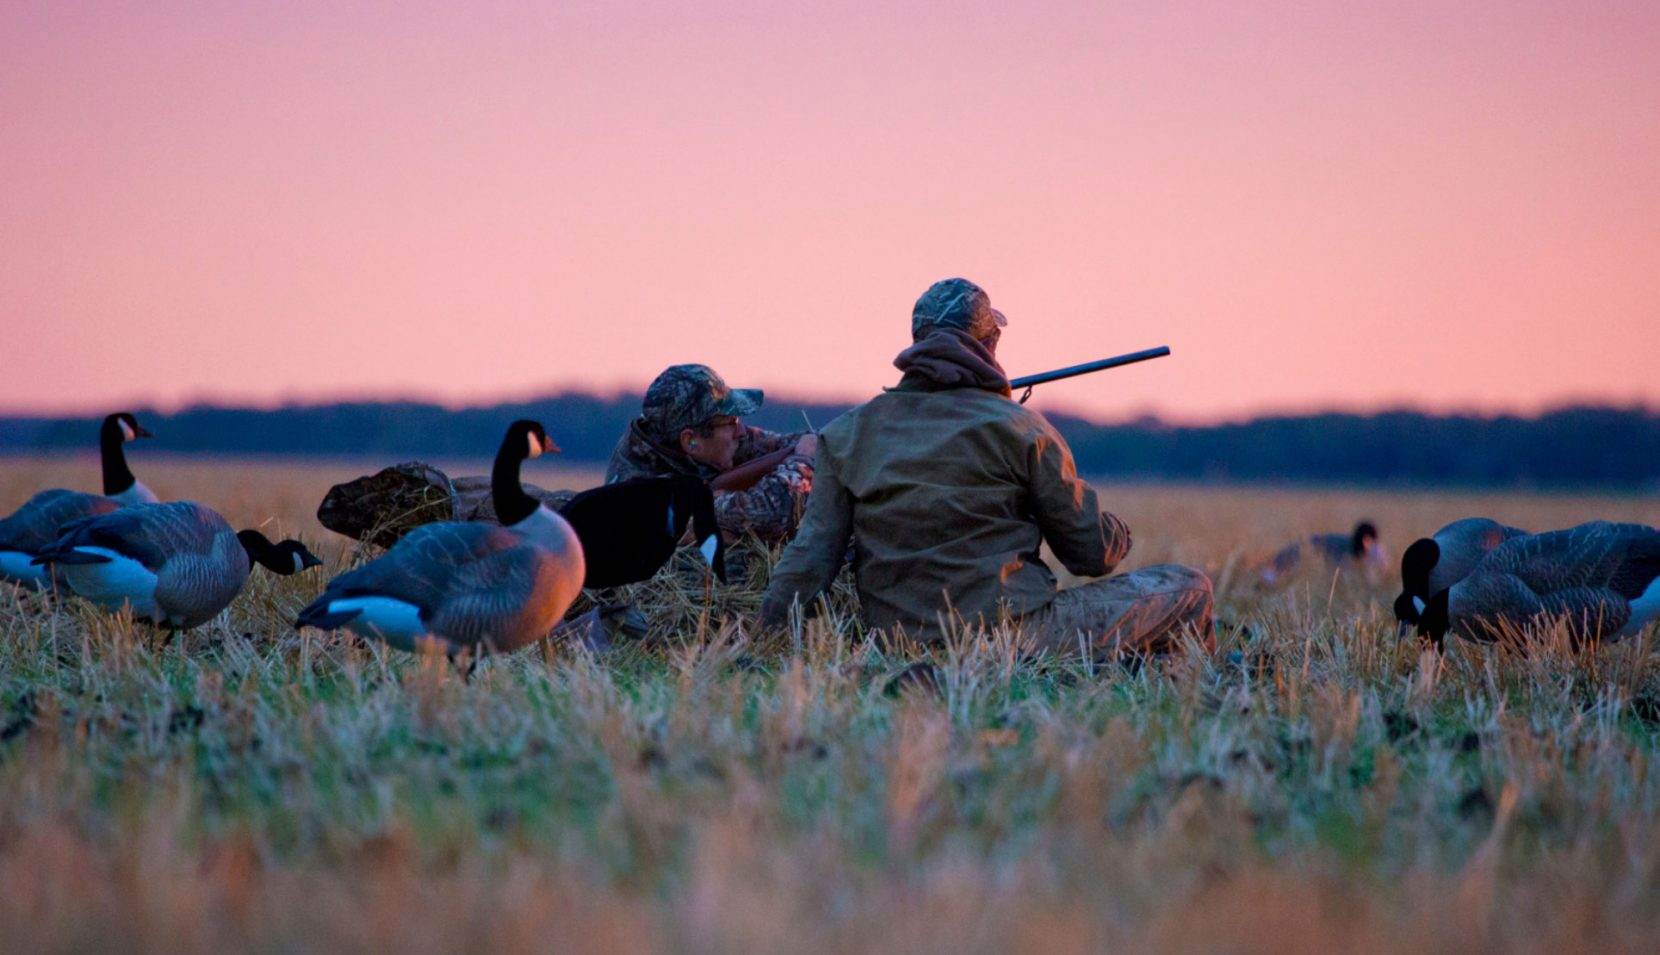 We remain steadfast and focused on our mission of wetland conservation that supports all outdoor lifestyles, including hunting.